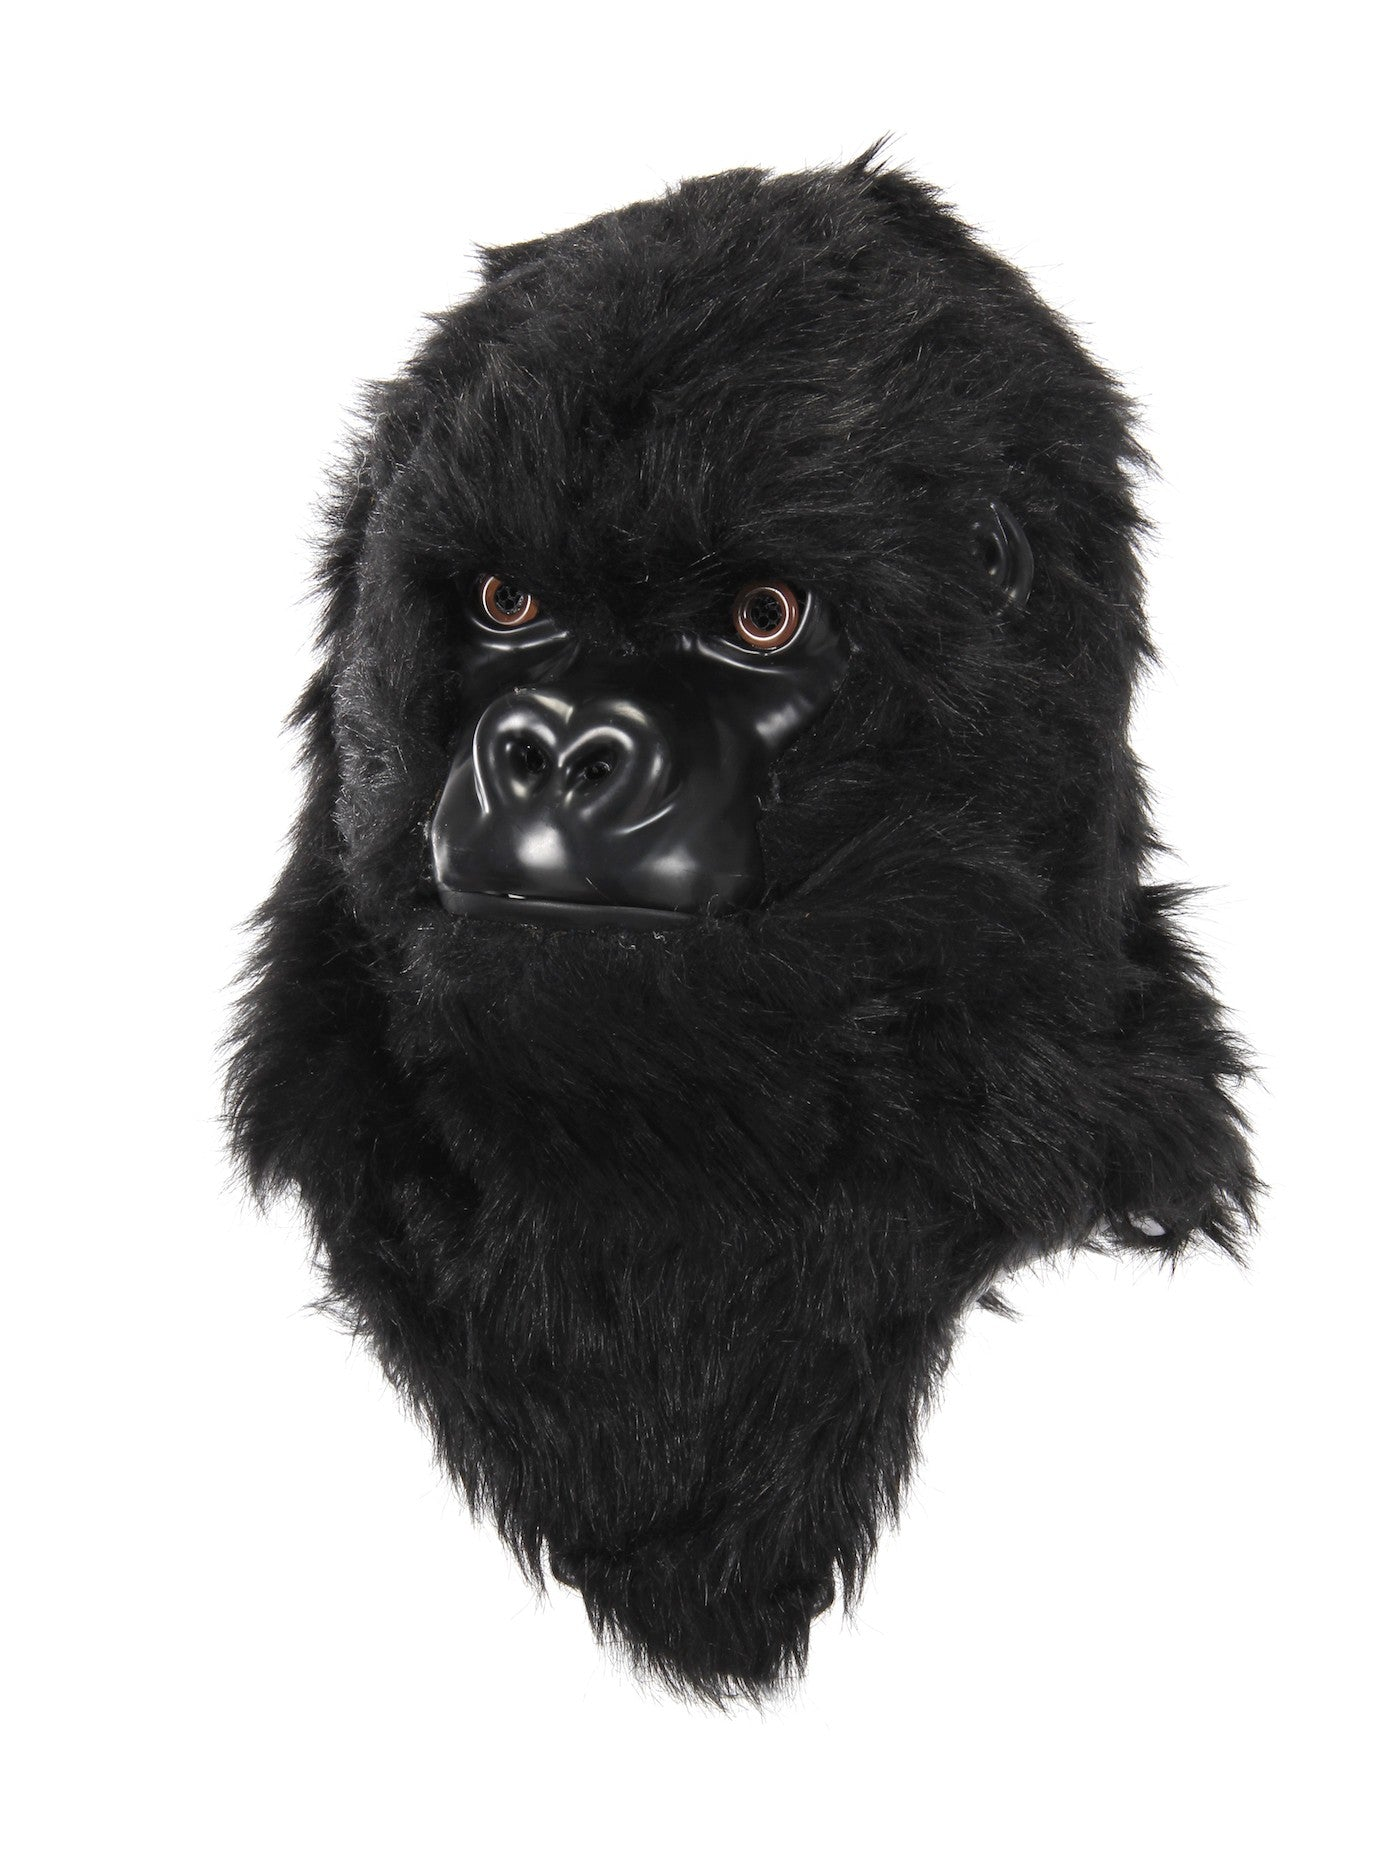 Gorilla Mouth Mover Mask by Elope